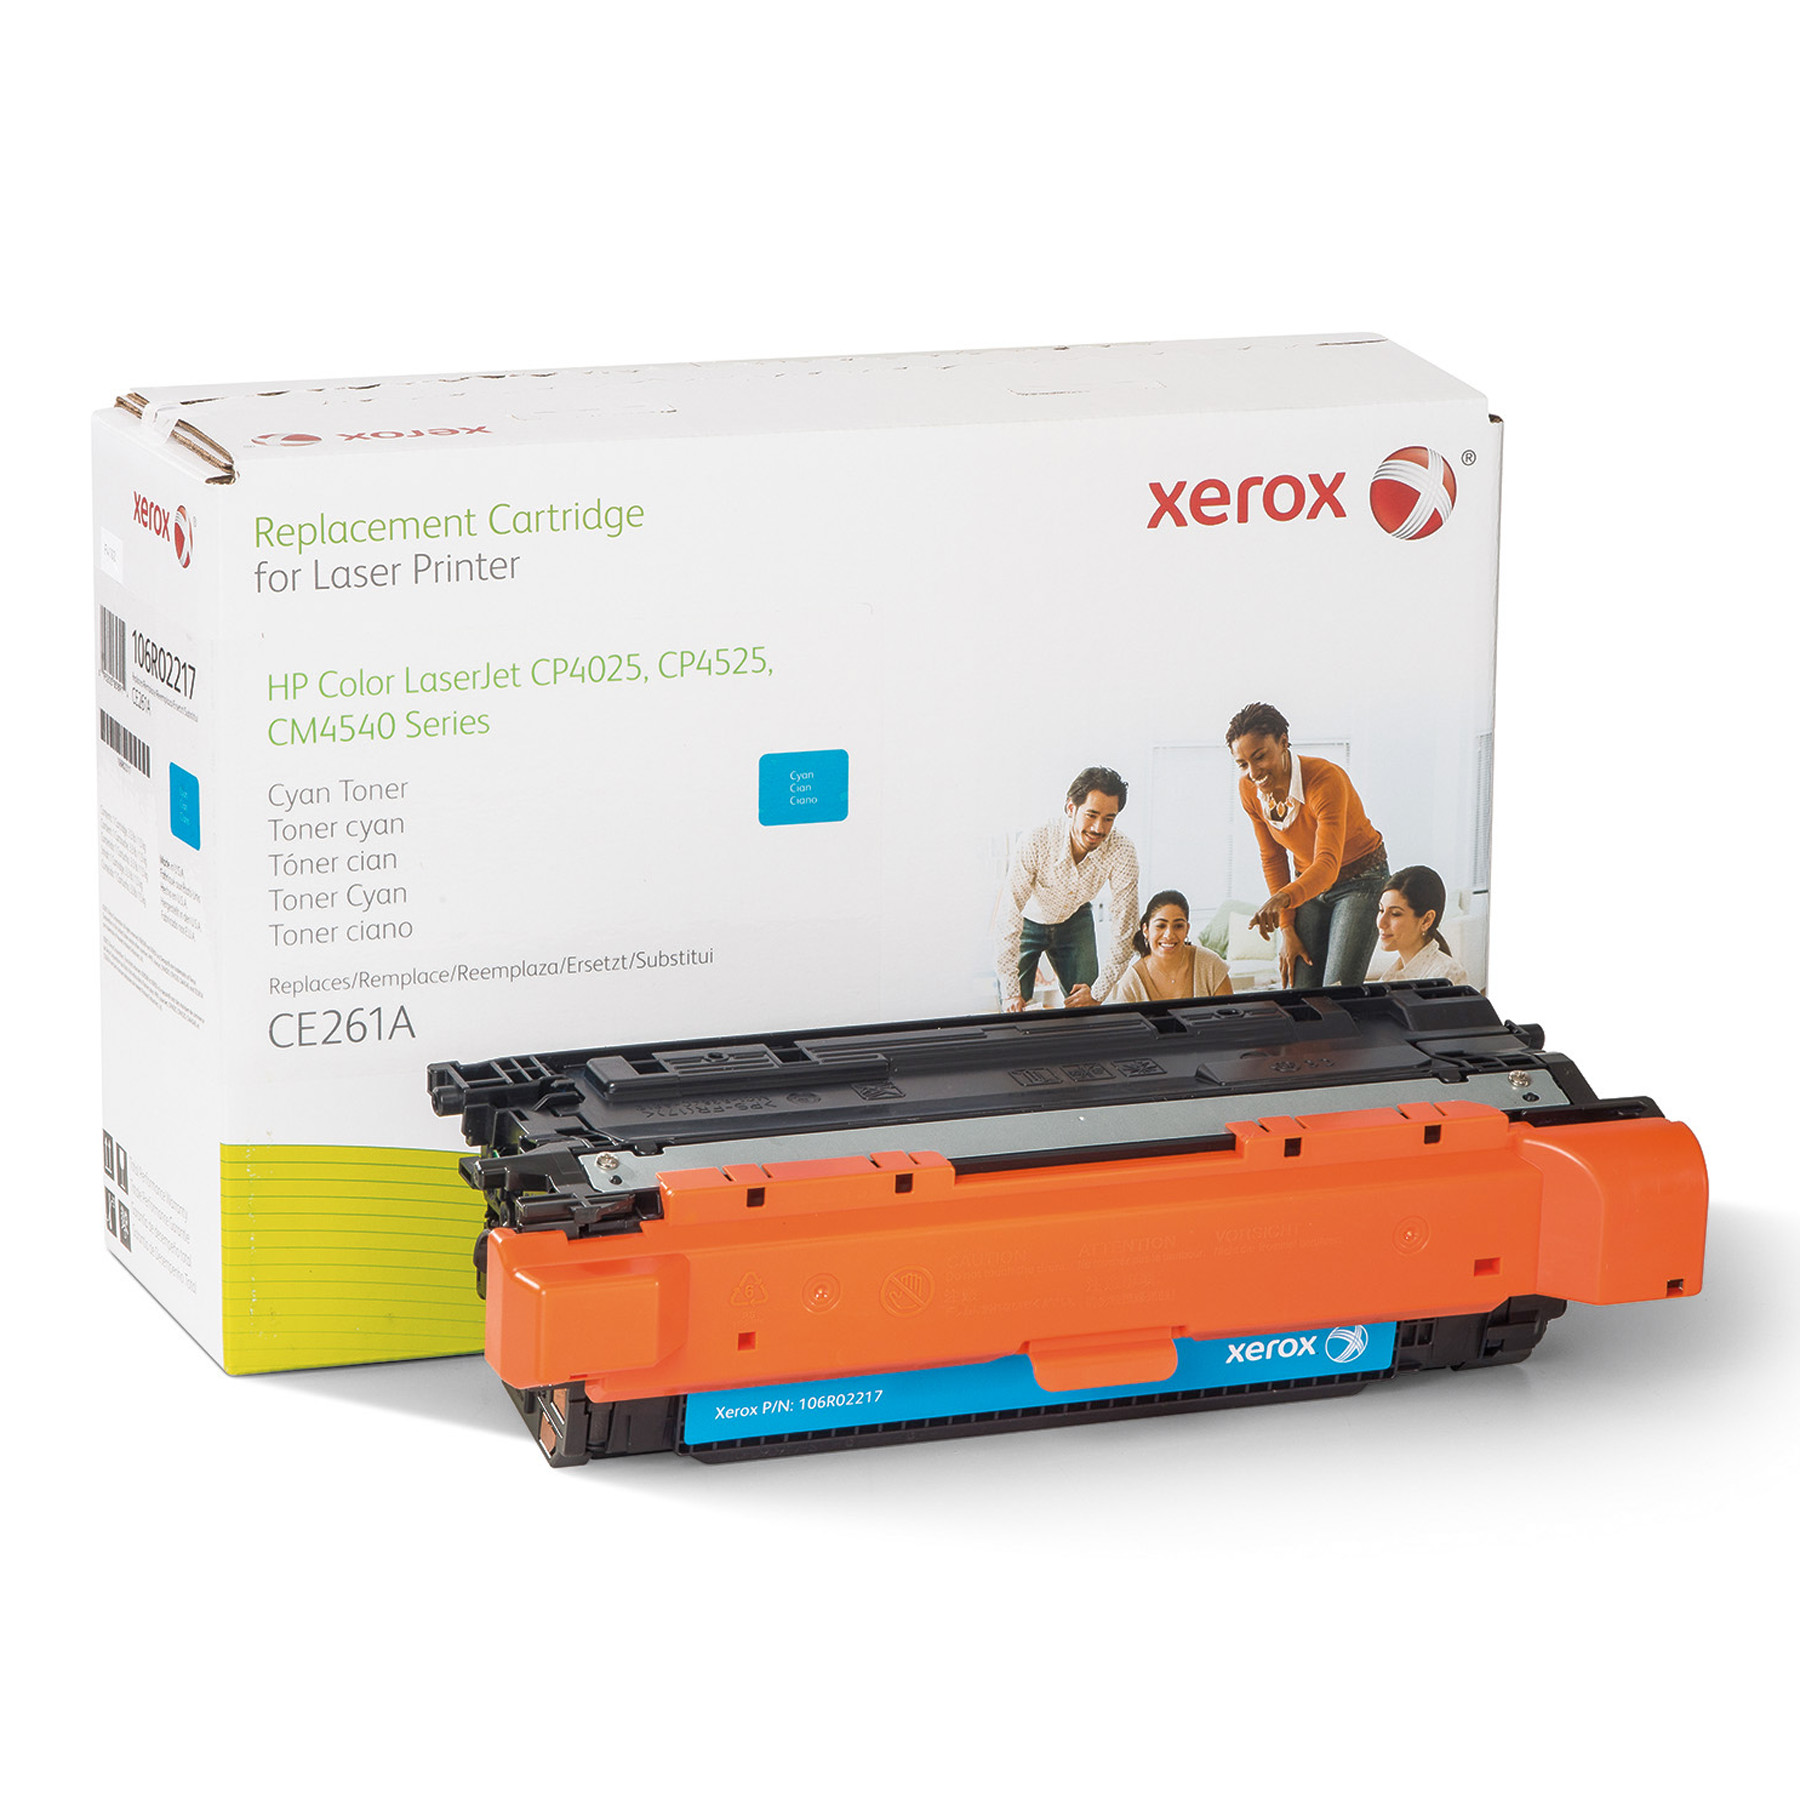 Xerox 106R2217 Replacement Toner for CE261A, 12700 Page Yield, Cyan